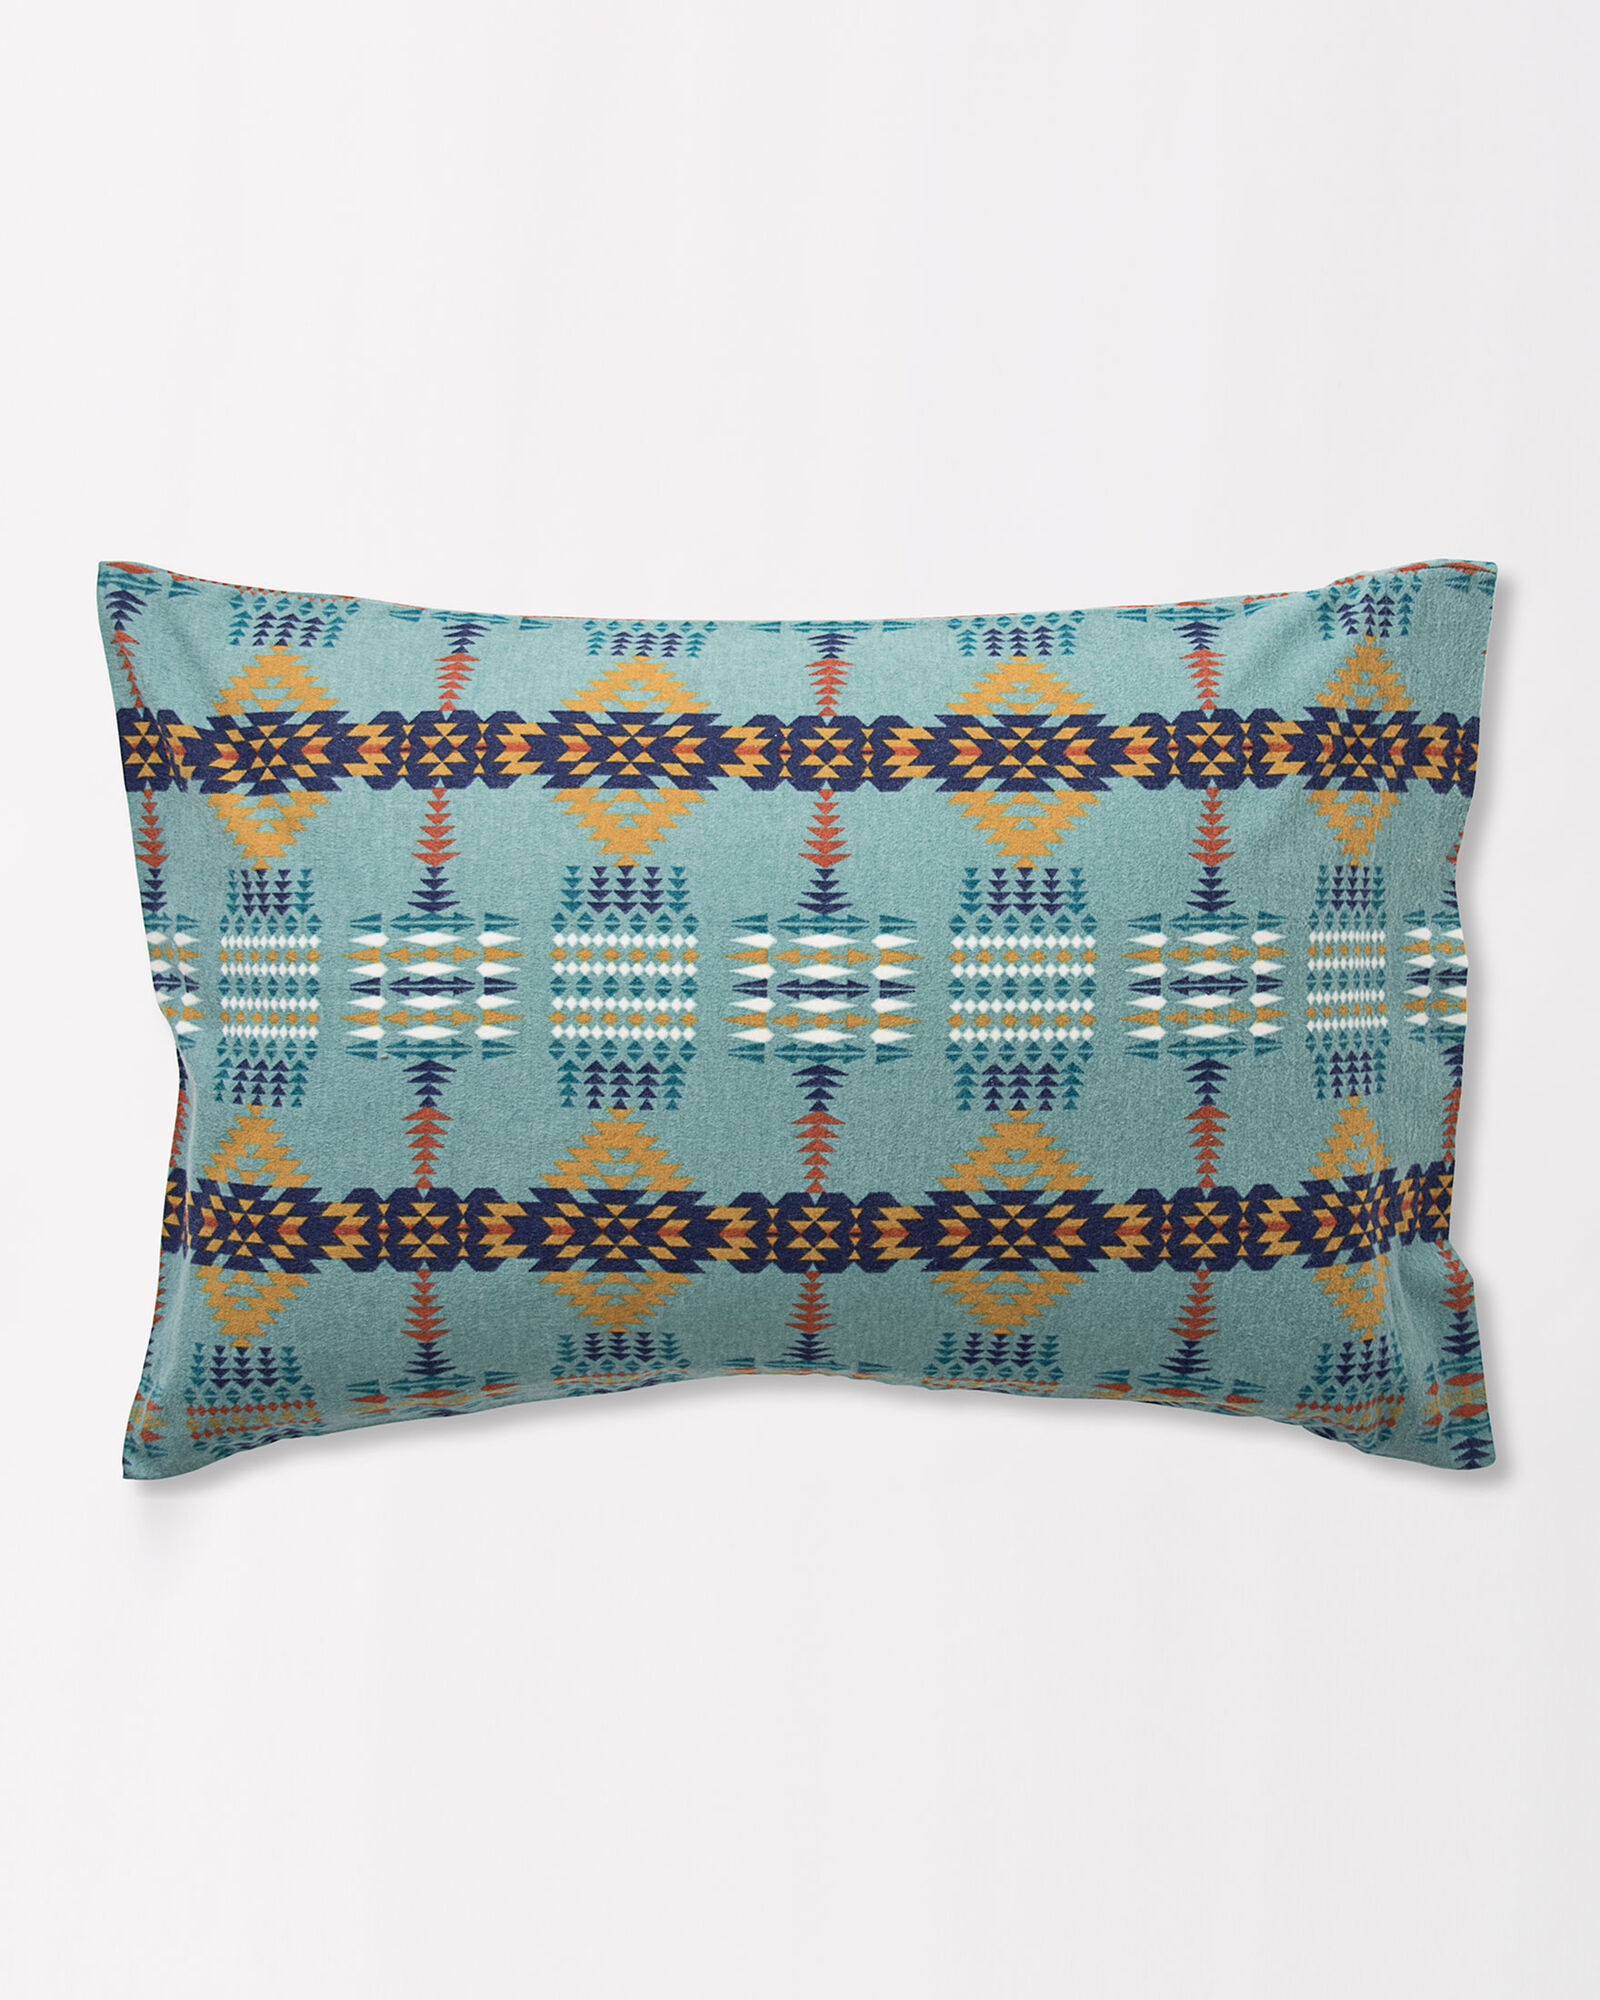 Rancho Arroyo Flannel Pillow Cases Pendleton